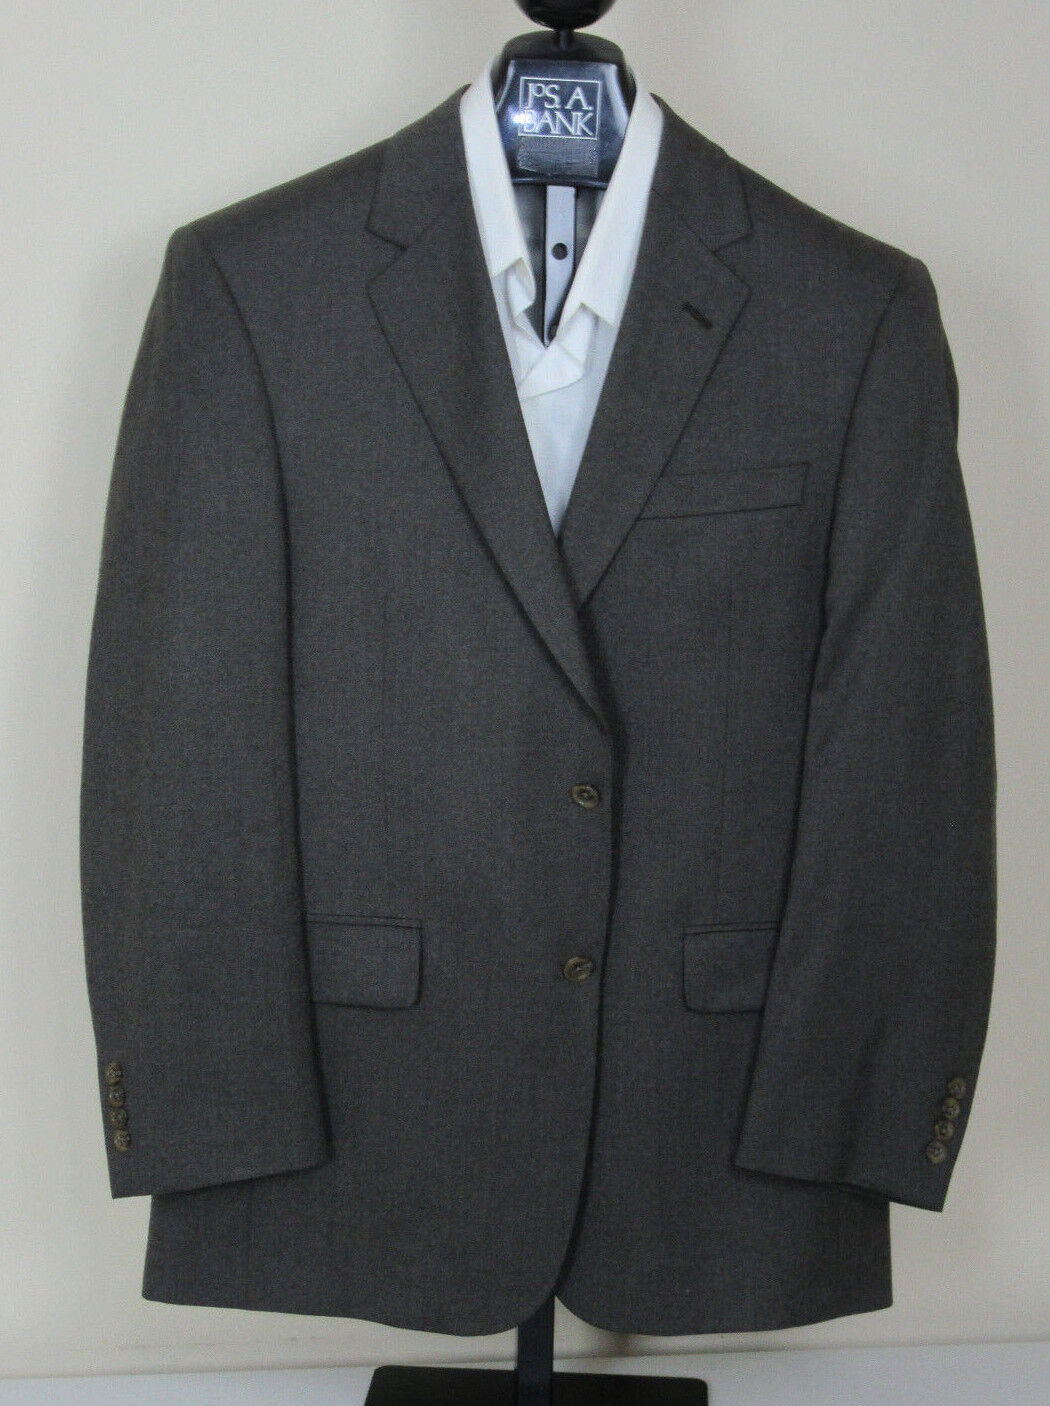 New Jos A Bank Executive solid Olive suit 41 R 35 W regular fit